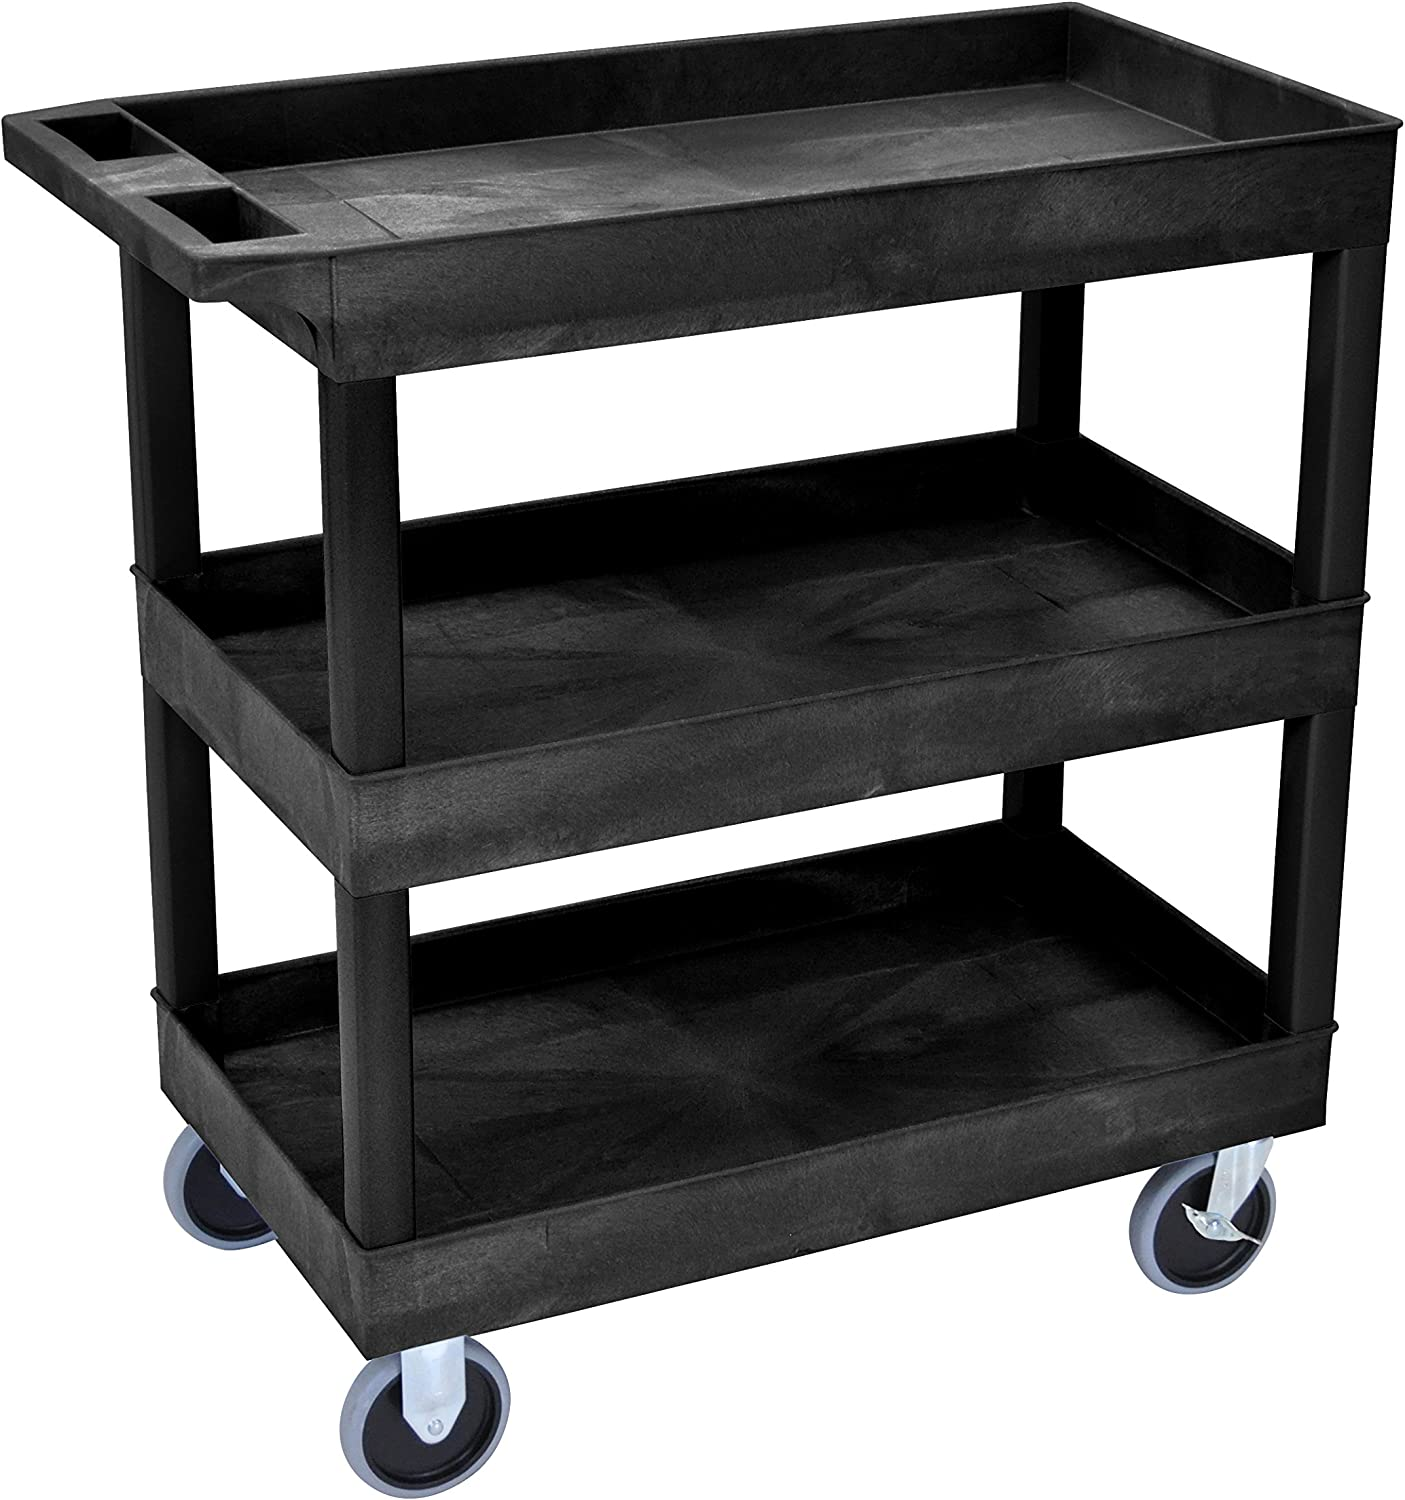 Amazon Com Luxor Hd High Capacity 3 Tub Shelves Cart In Black 18 D X 32 W Industrial Scientific